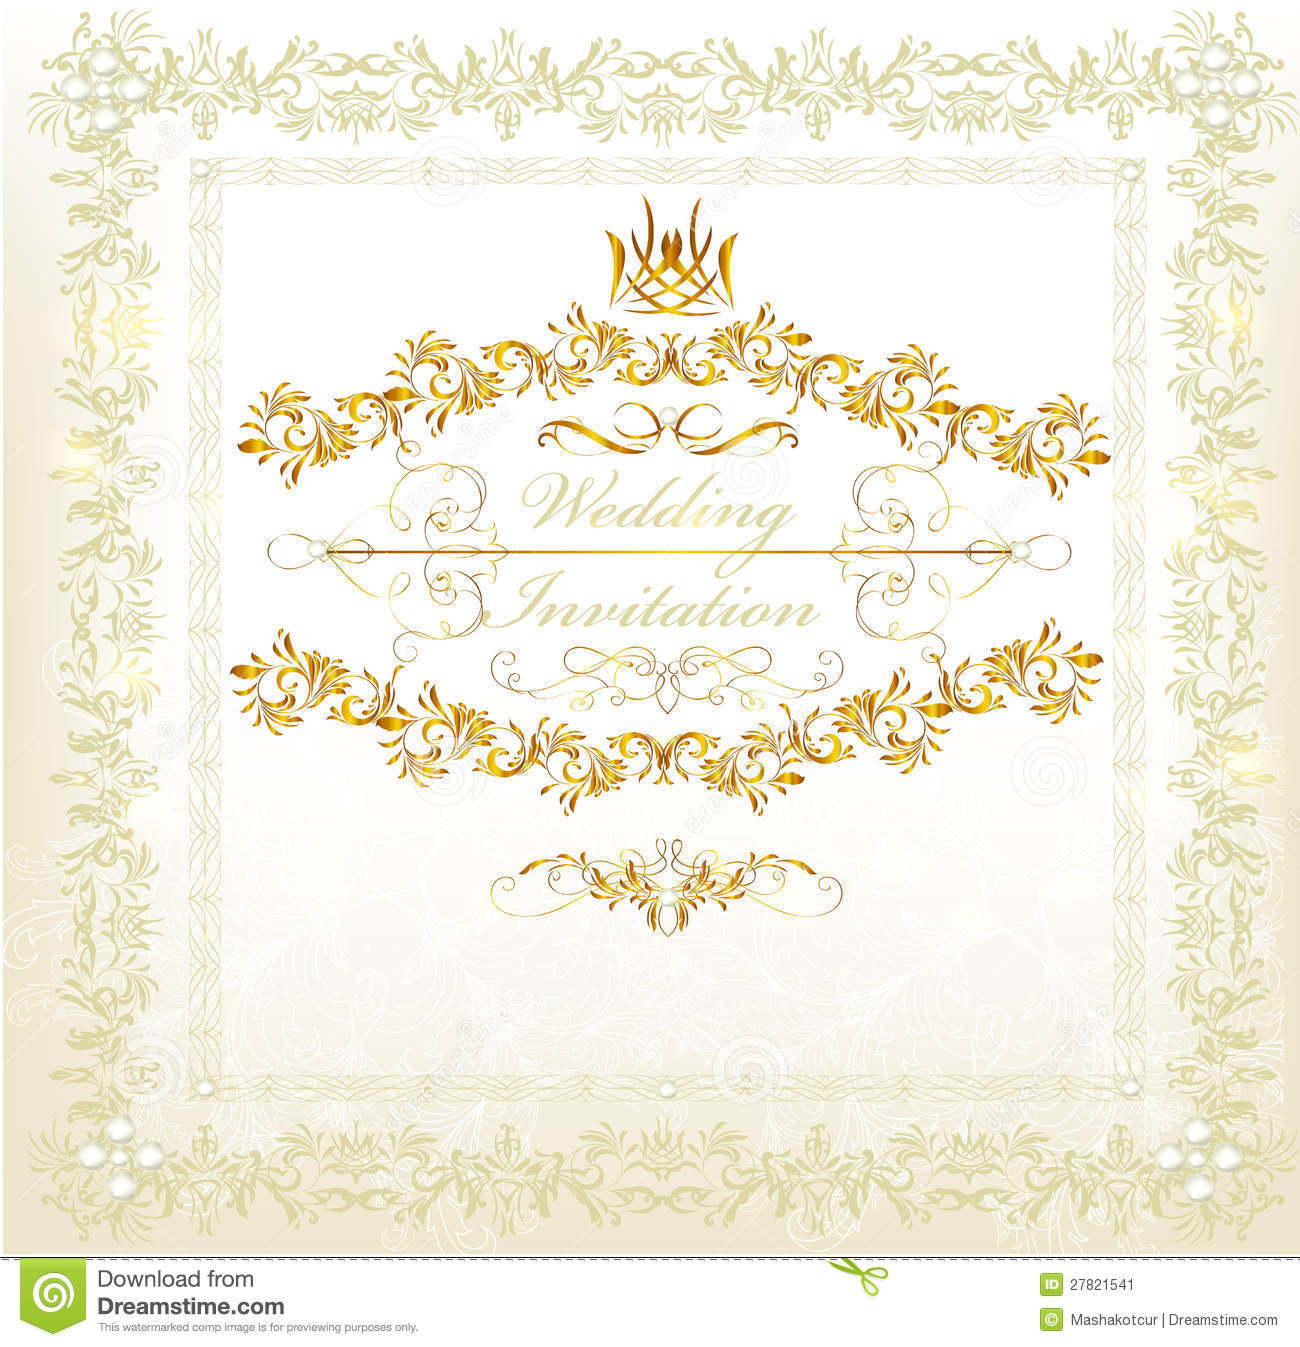 Marriage Invitation Card English